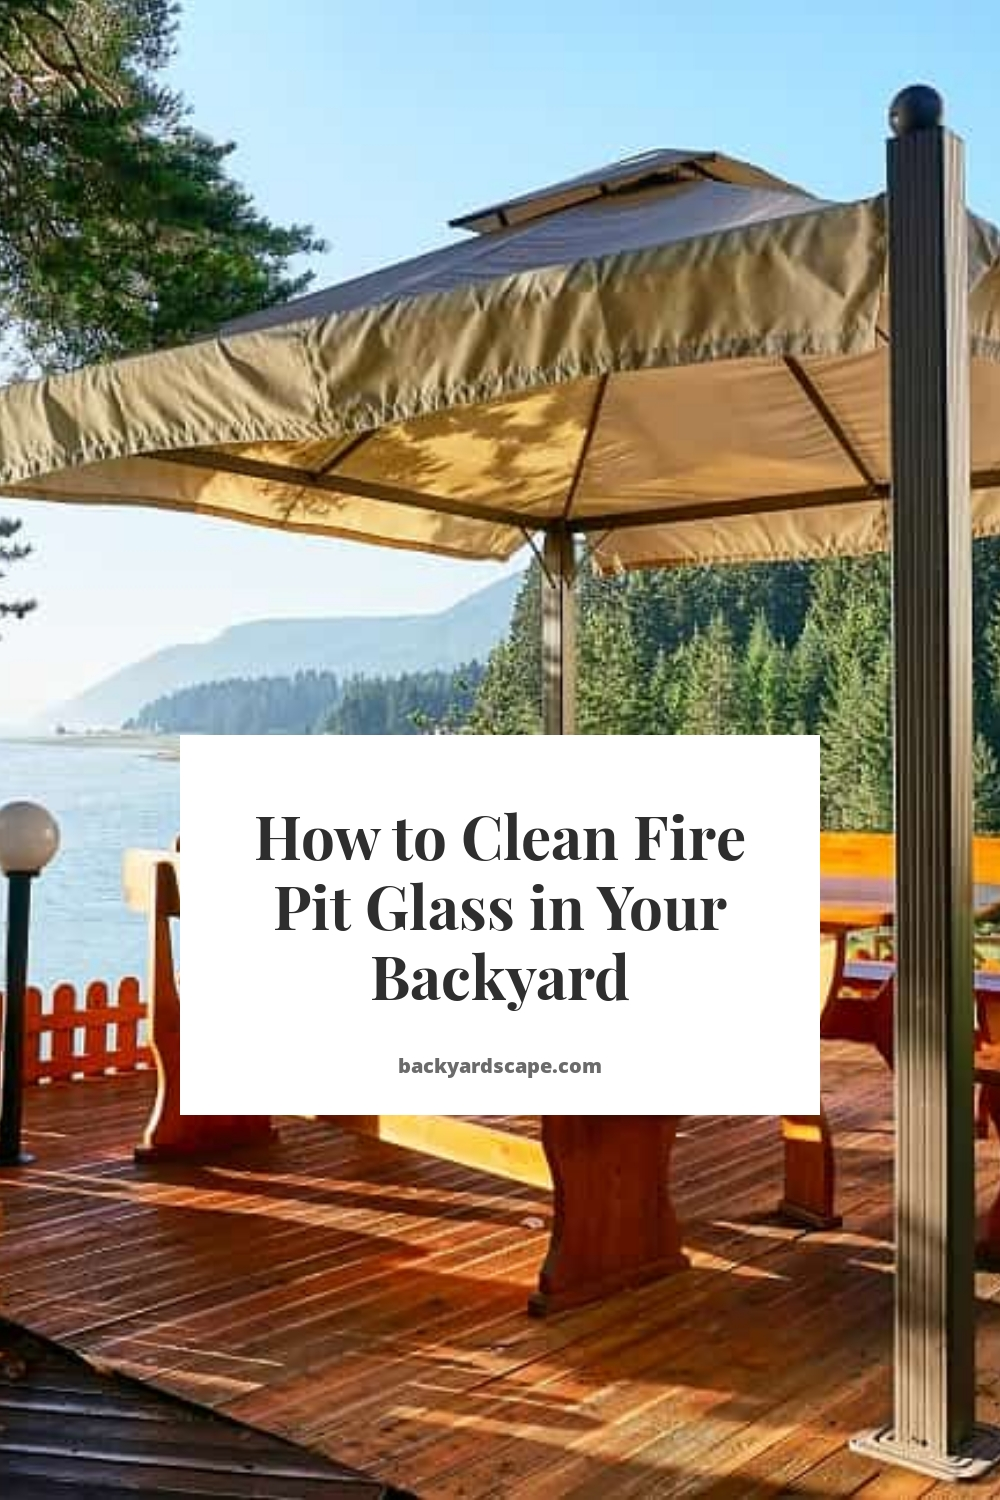 How to Clean Fire Pit Glass in Your Backyard